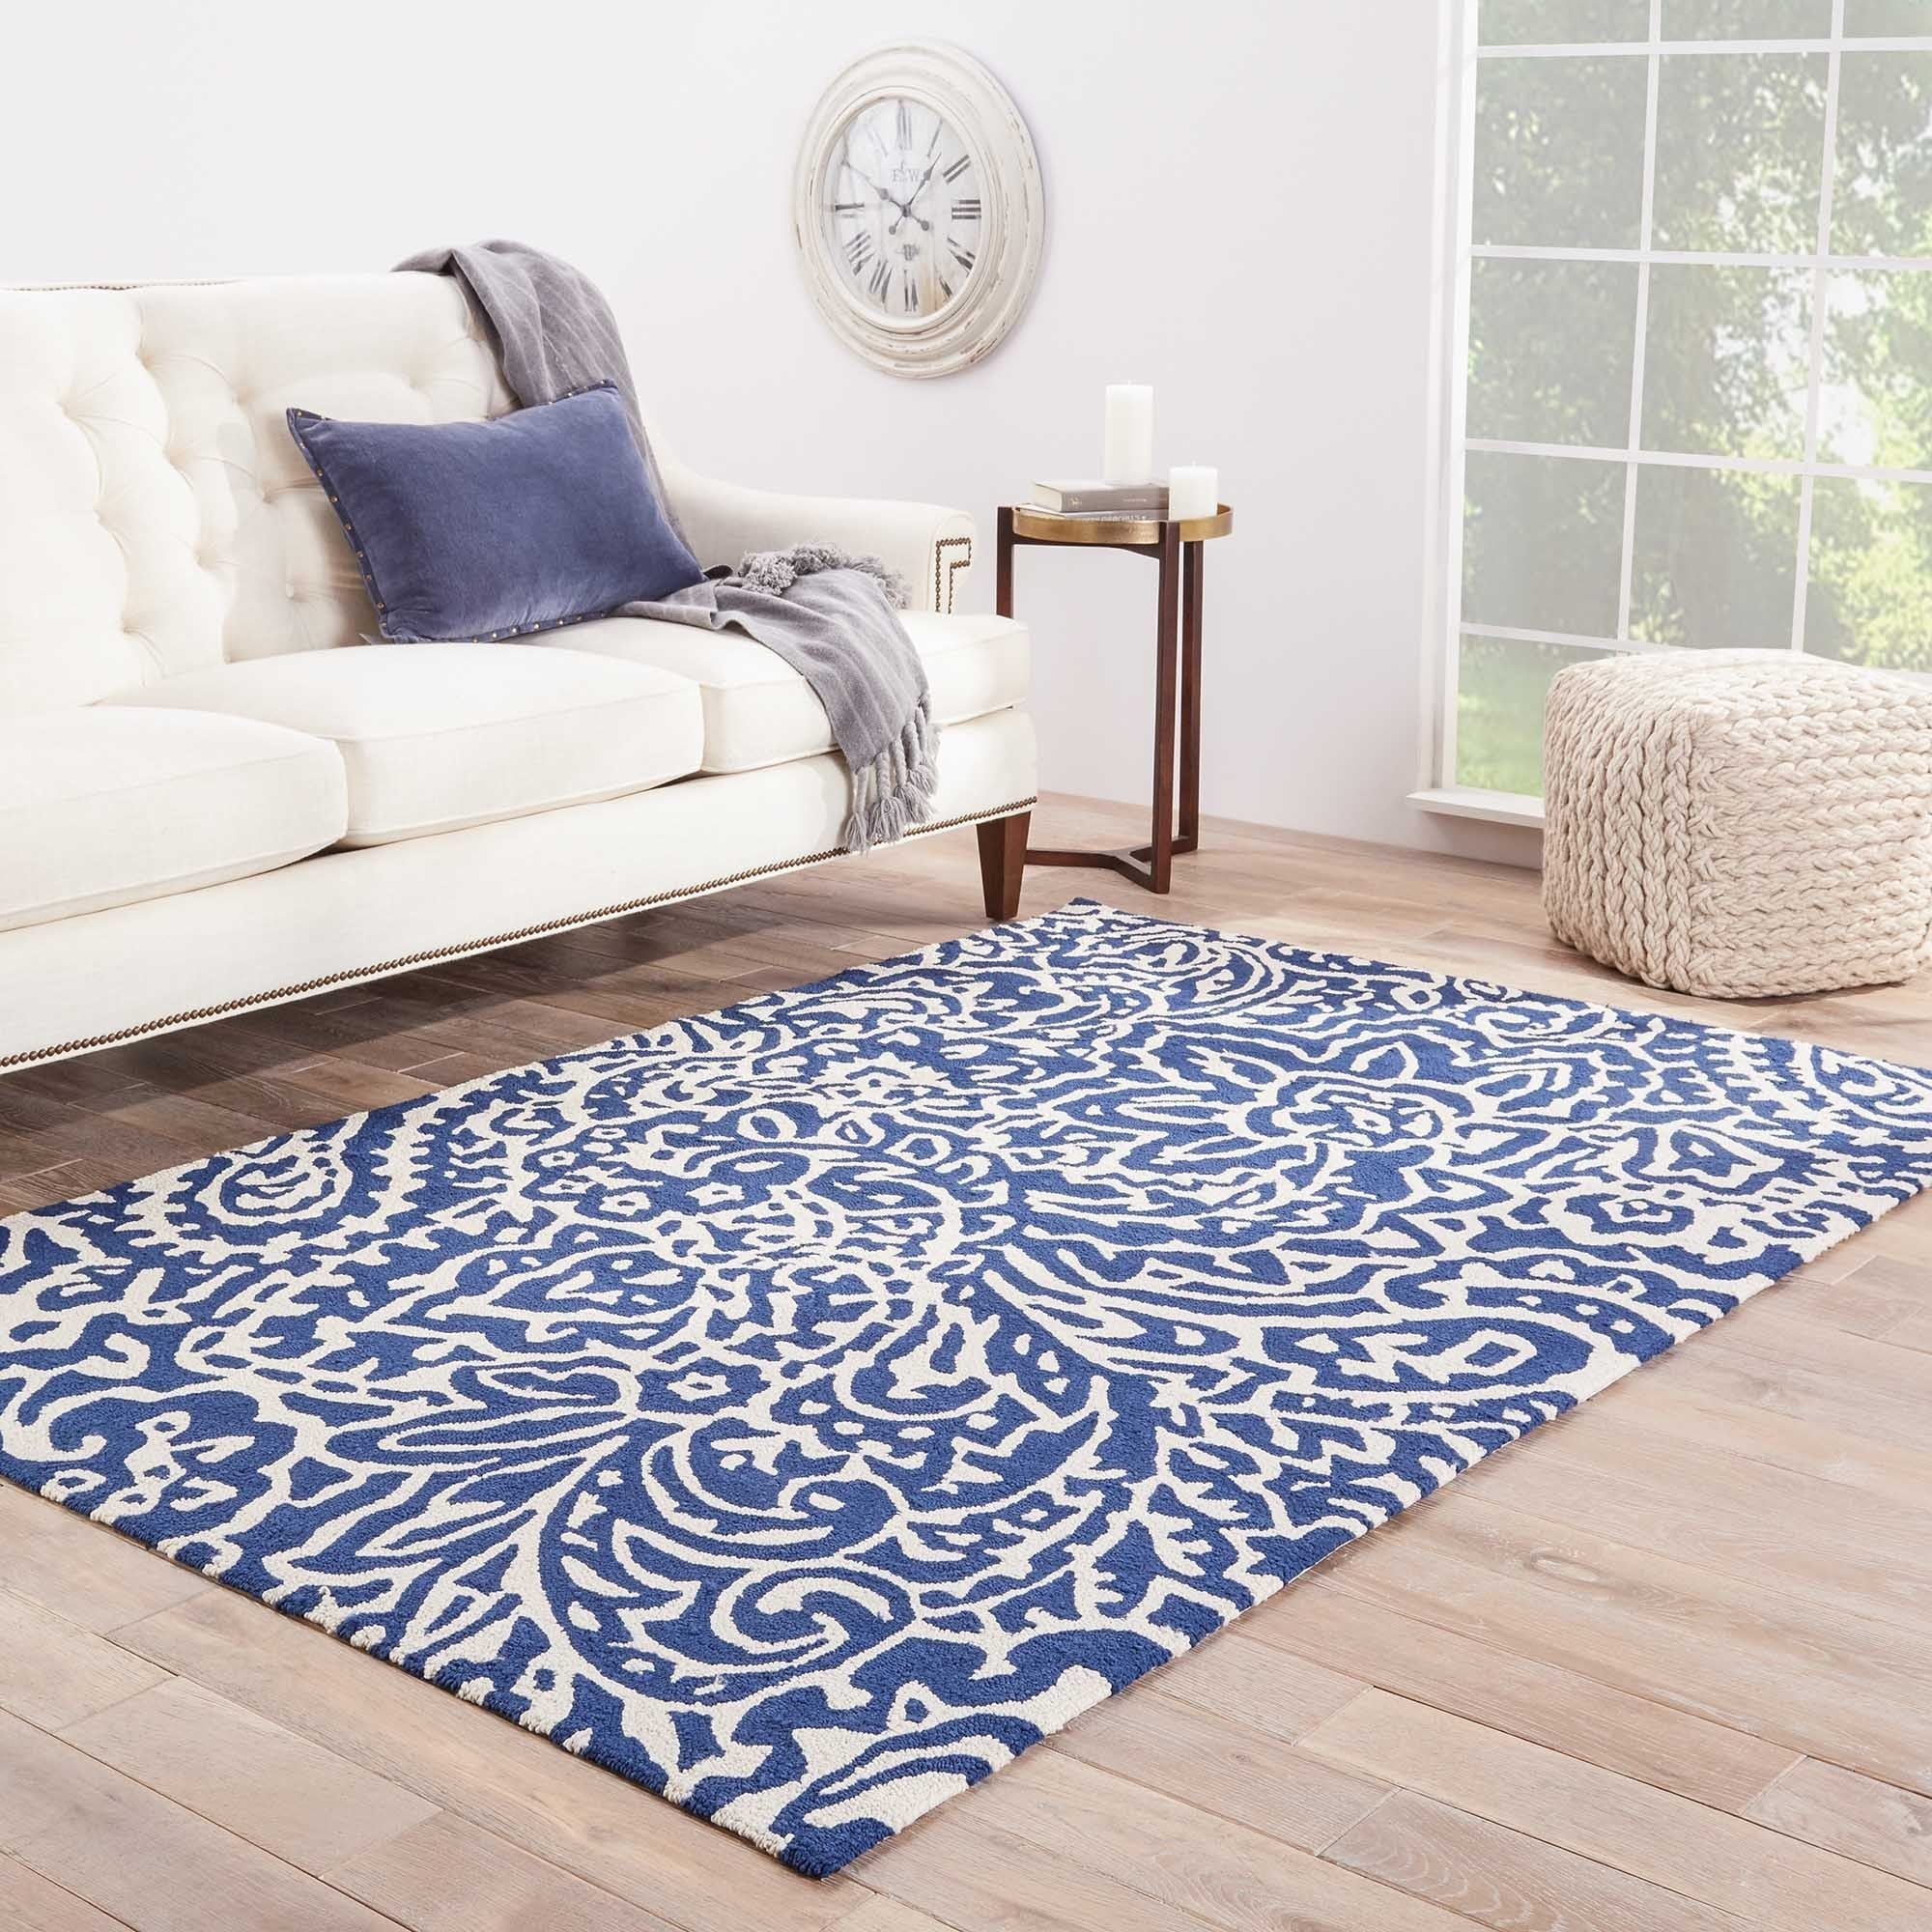 Jayda Indoor Outdoor Fl Blue White Area Rug 5 X 7 6 On Free Shipping Today 6433858